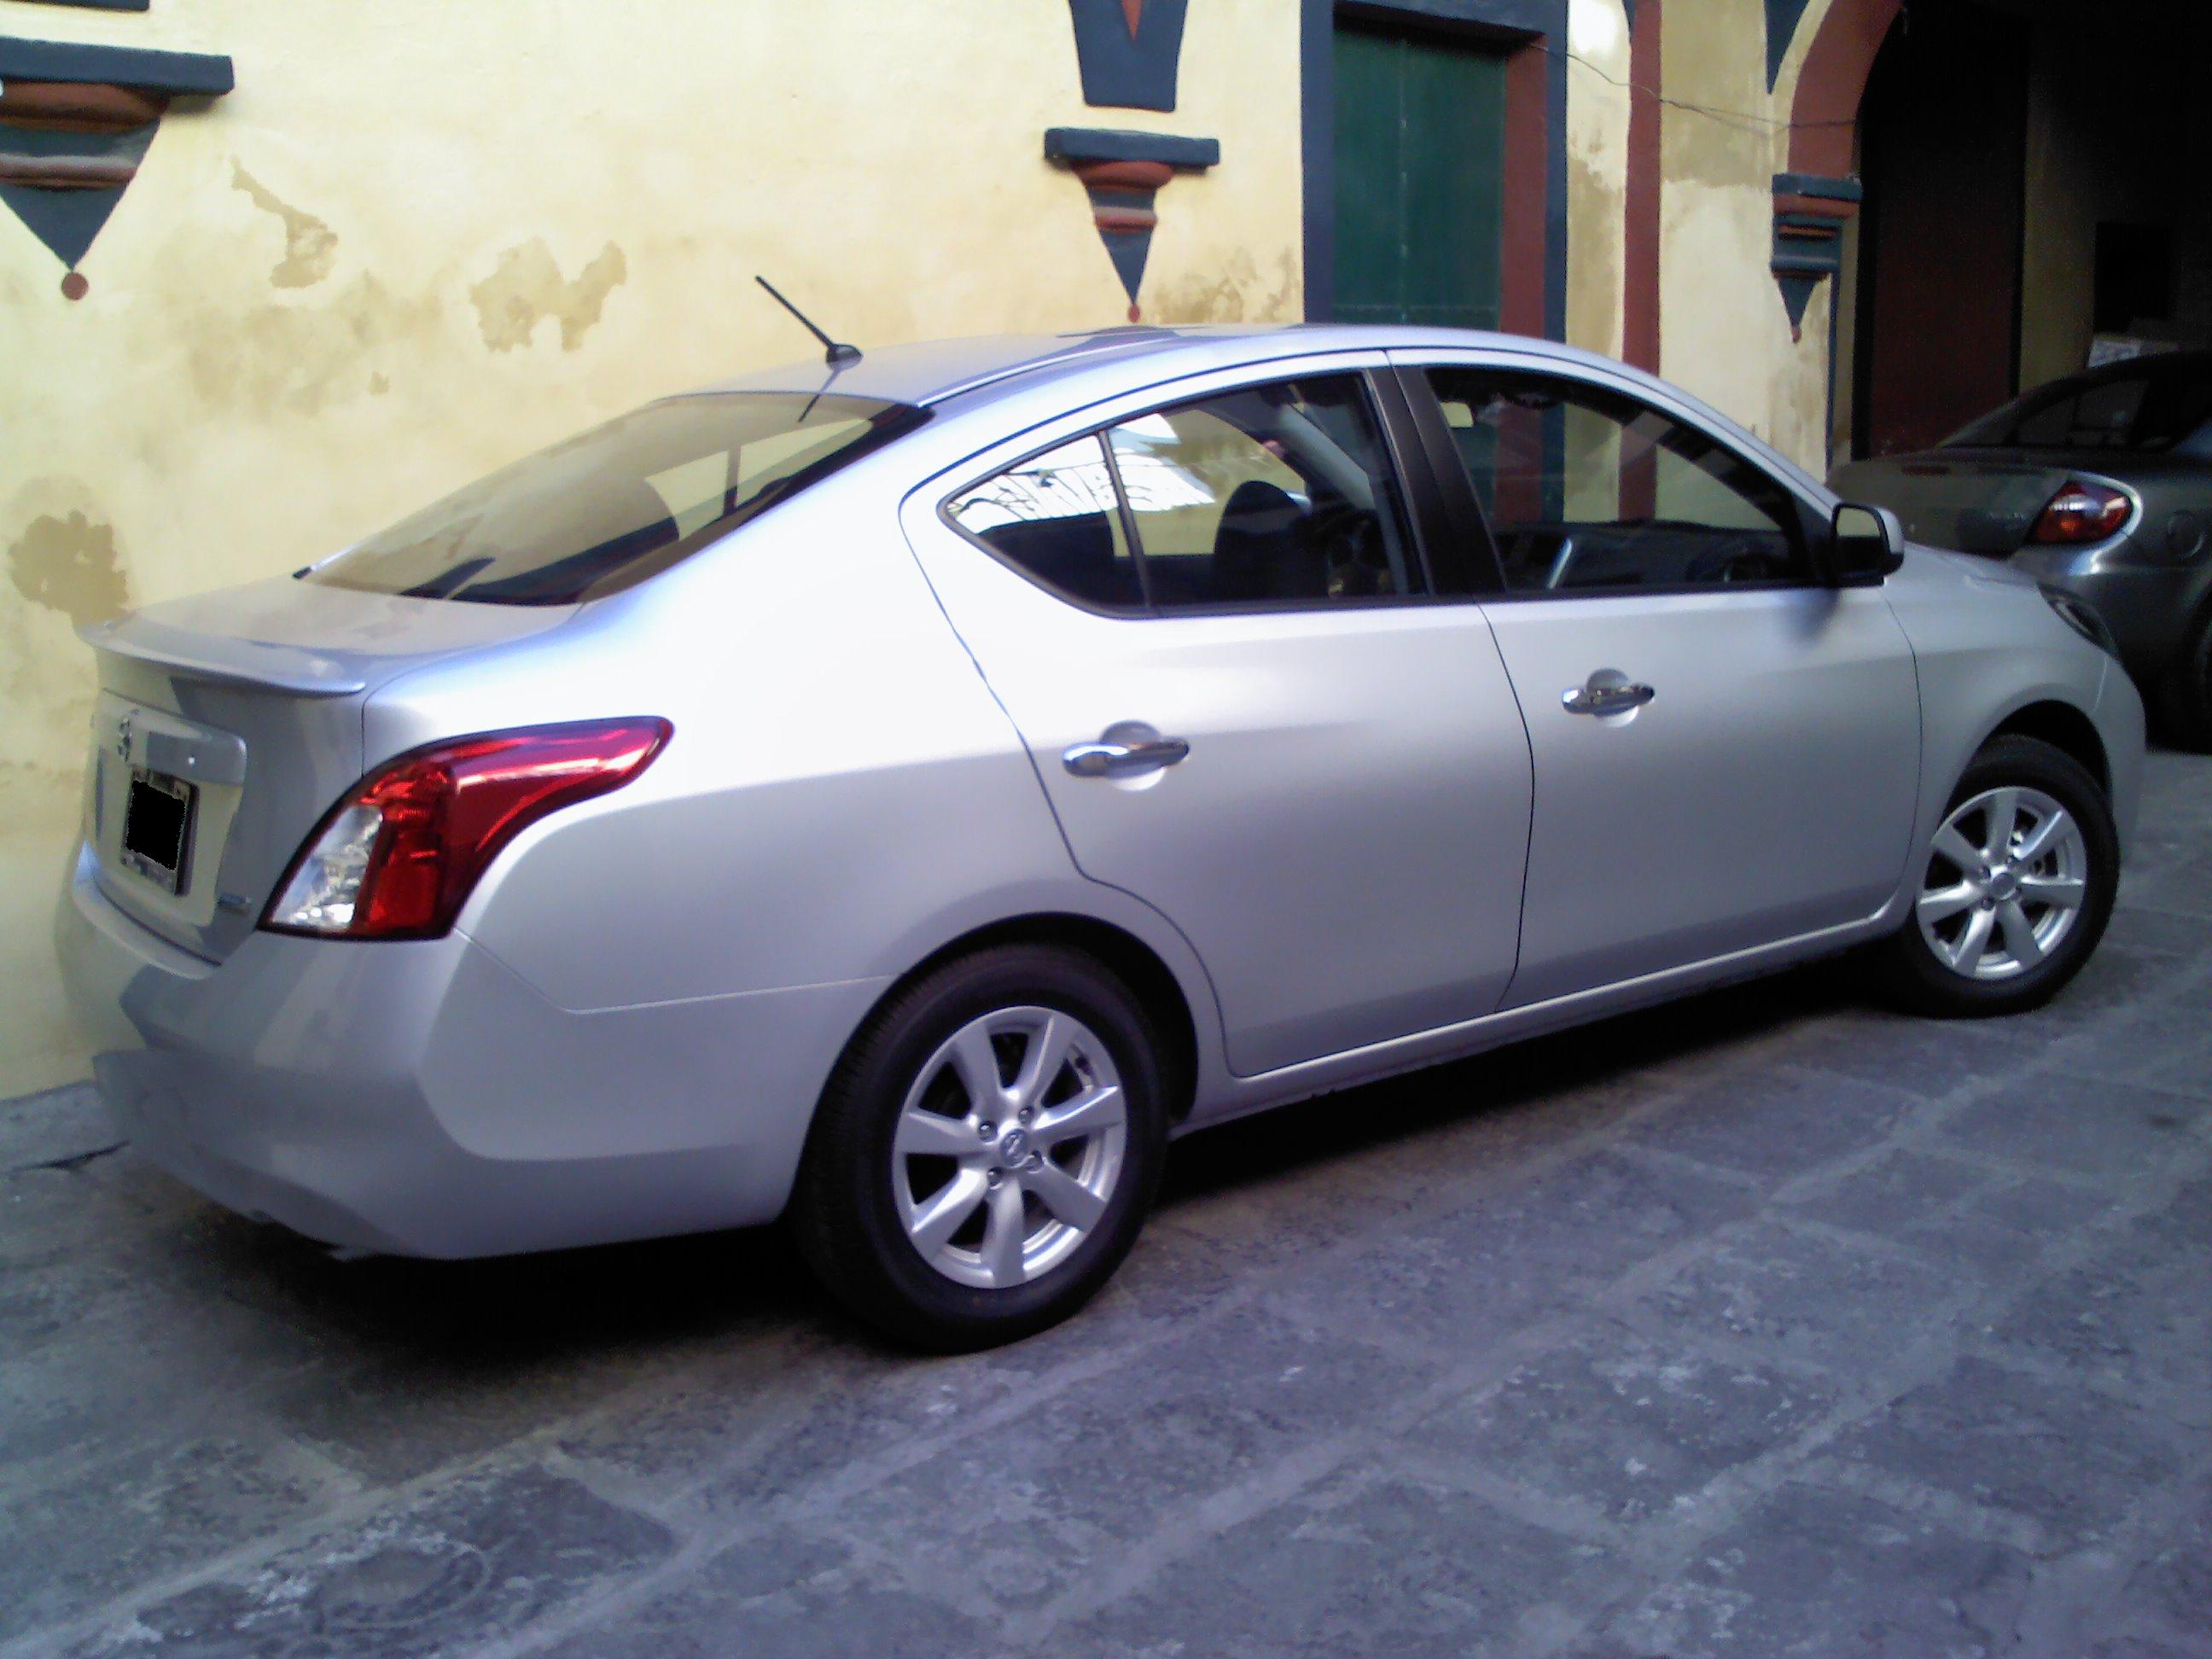 nissan versa 2013 review amazing pictures and images look at the car. Black Bedroom Furniture Sets. Home Design Ideas